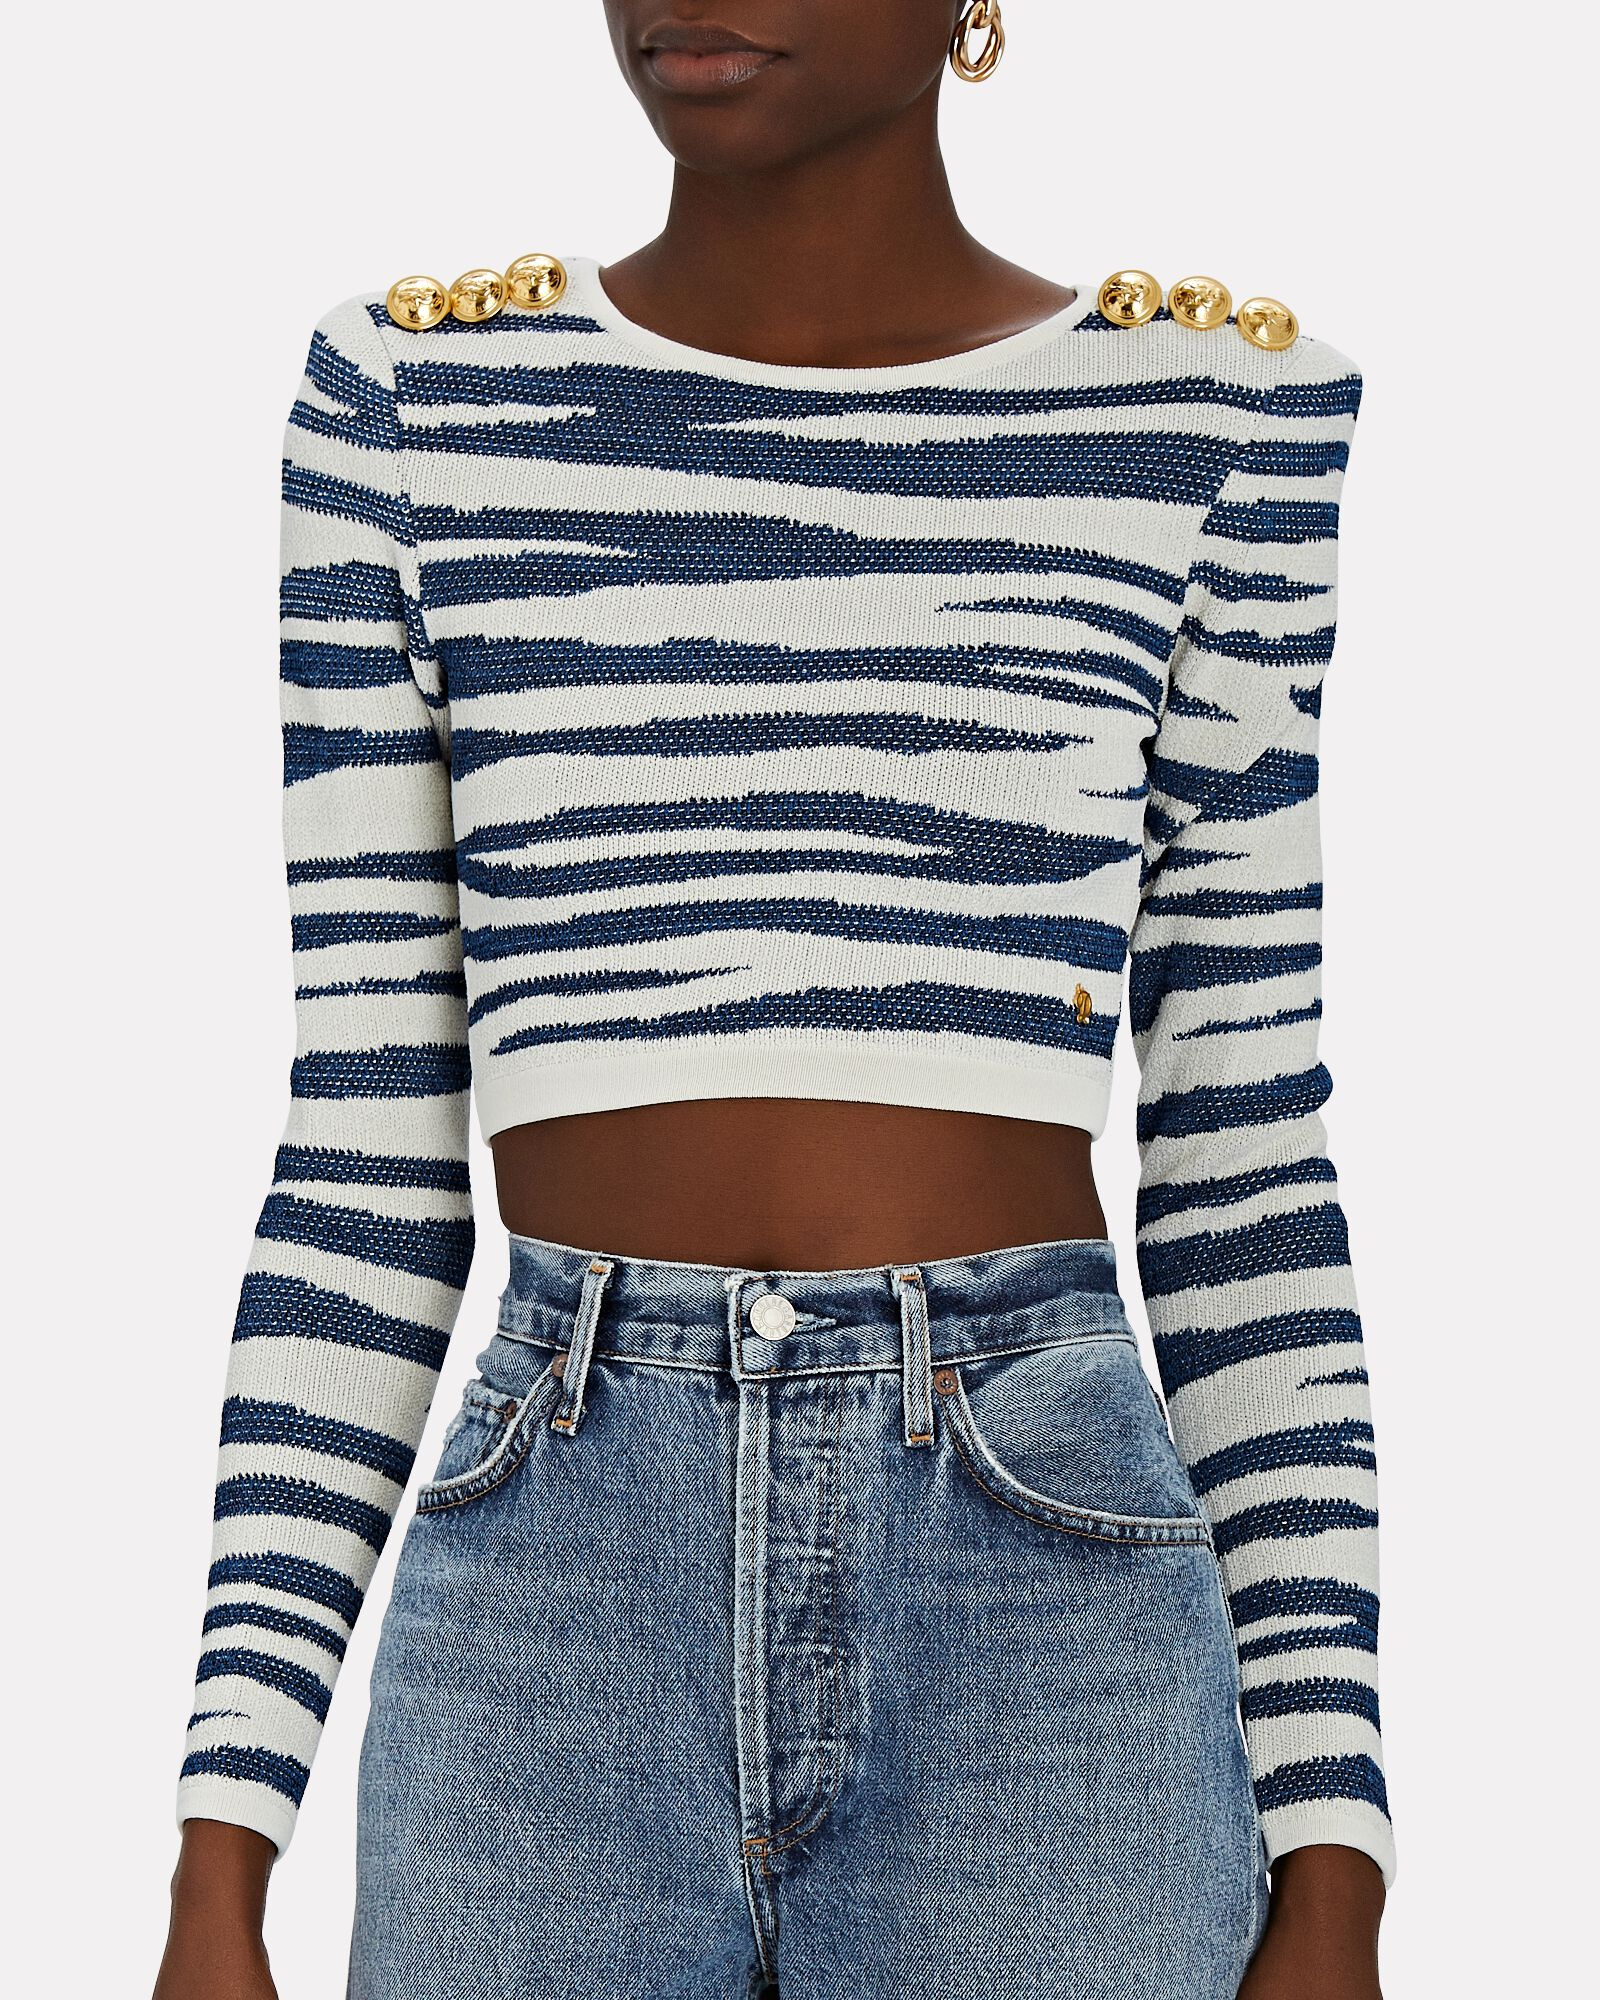 Tiger Knit Jacquard Crop Top, WHITE/BLUE, hi-res